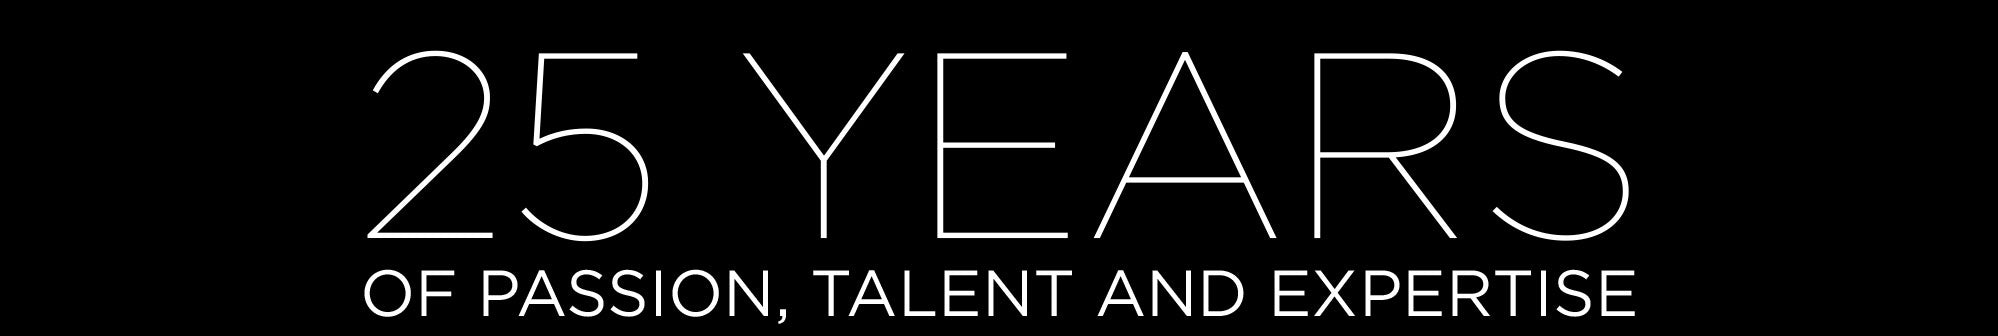 25 years of passion, talent and expertise